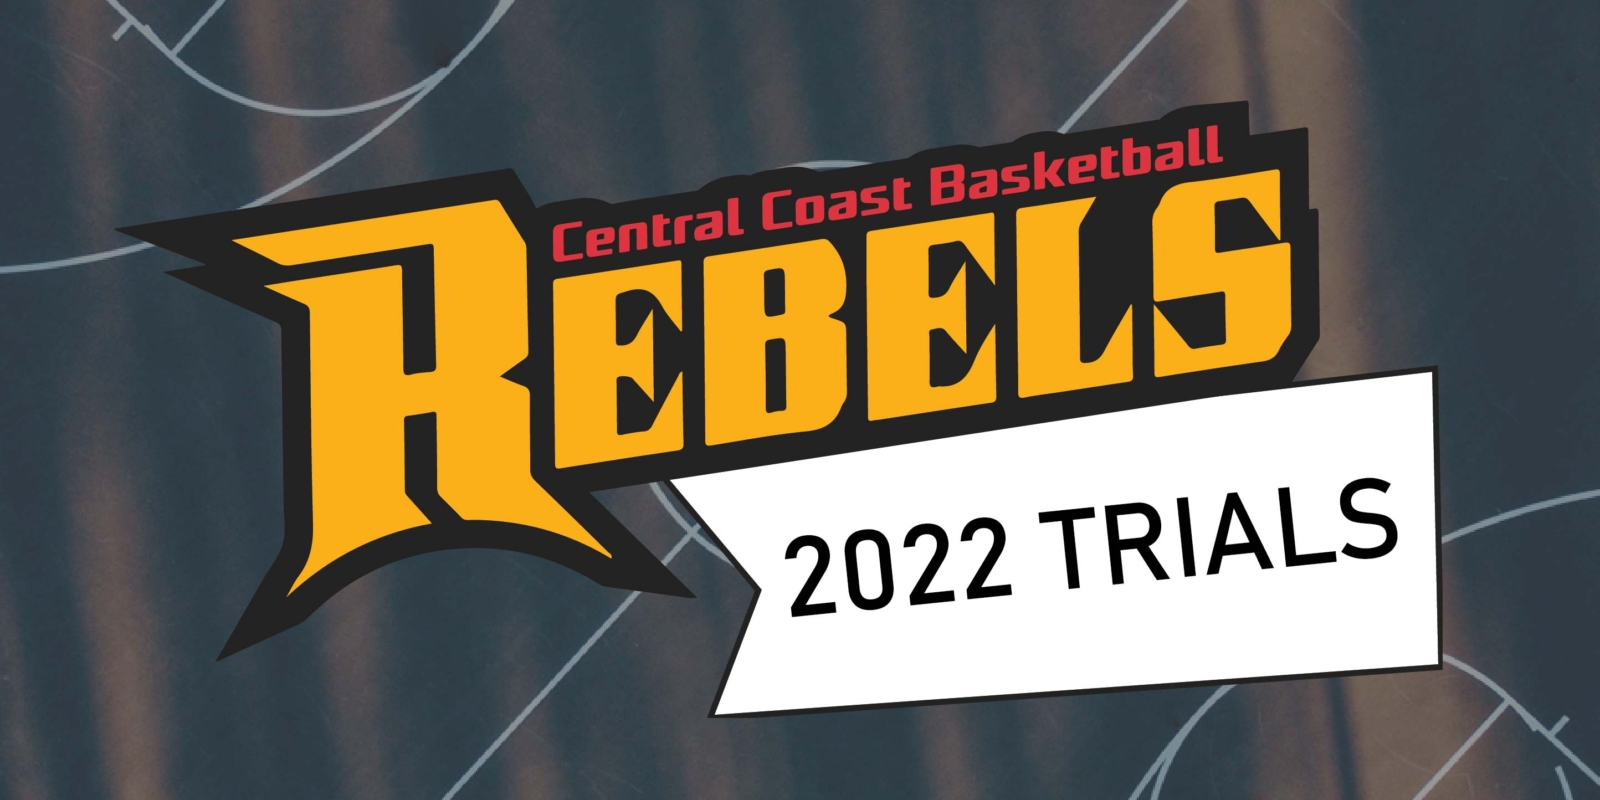 Rebels Trials 4th and 5th December